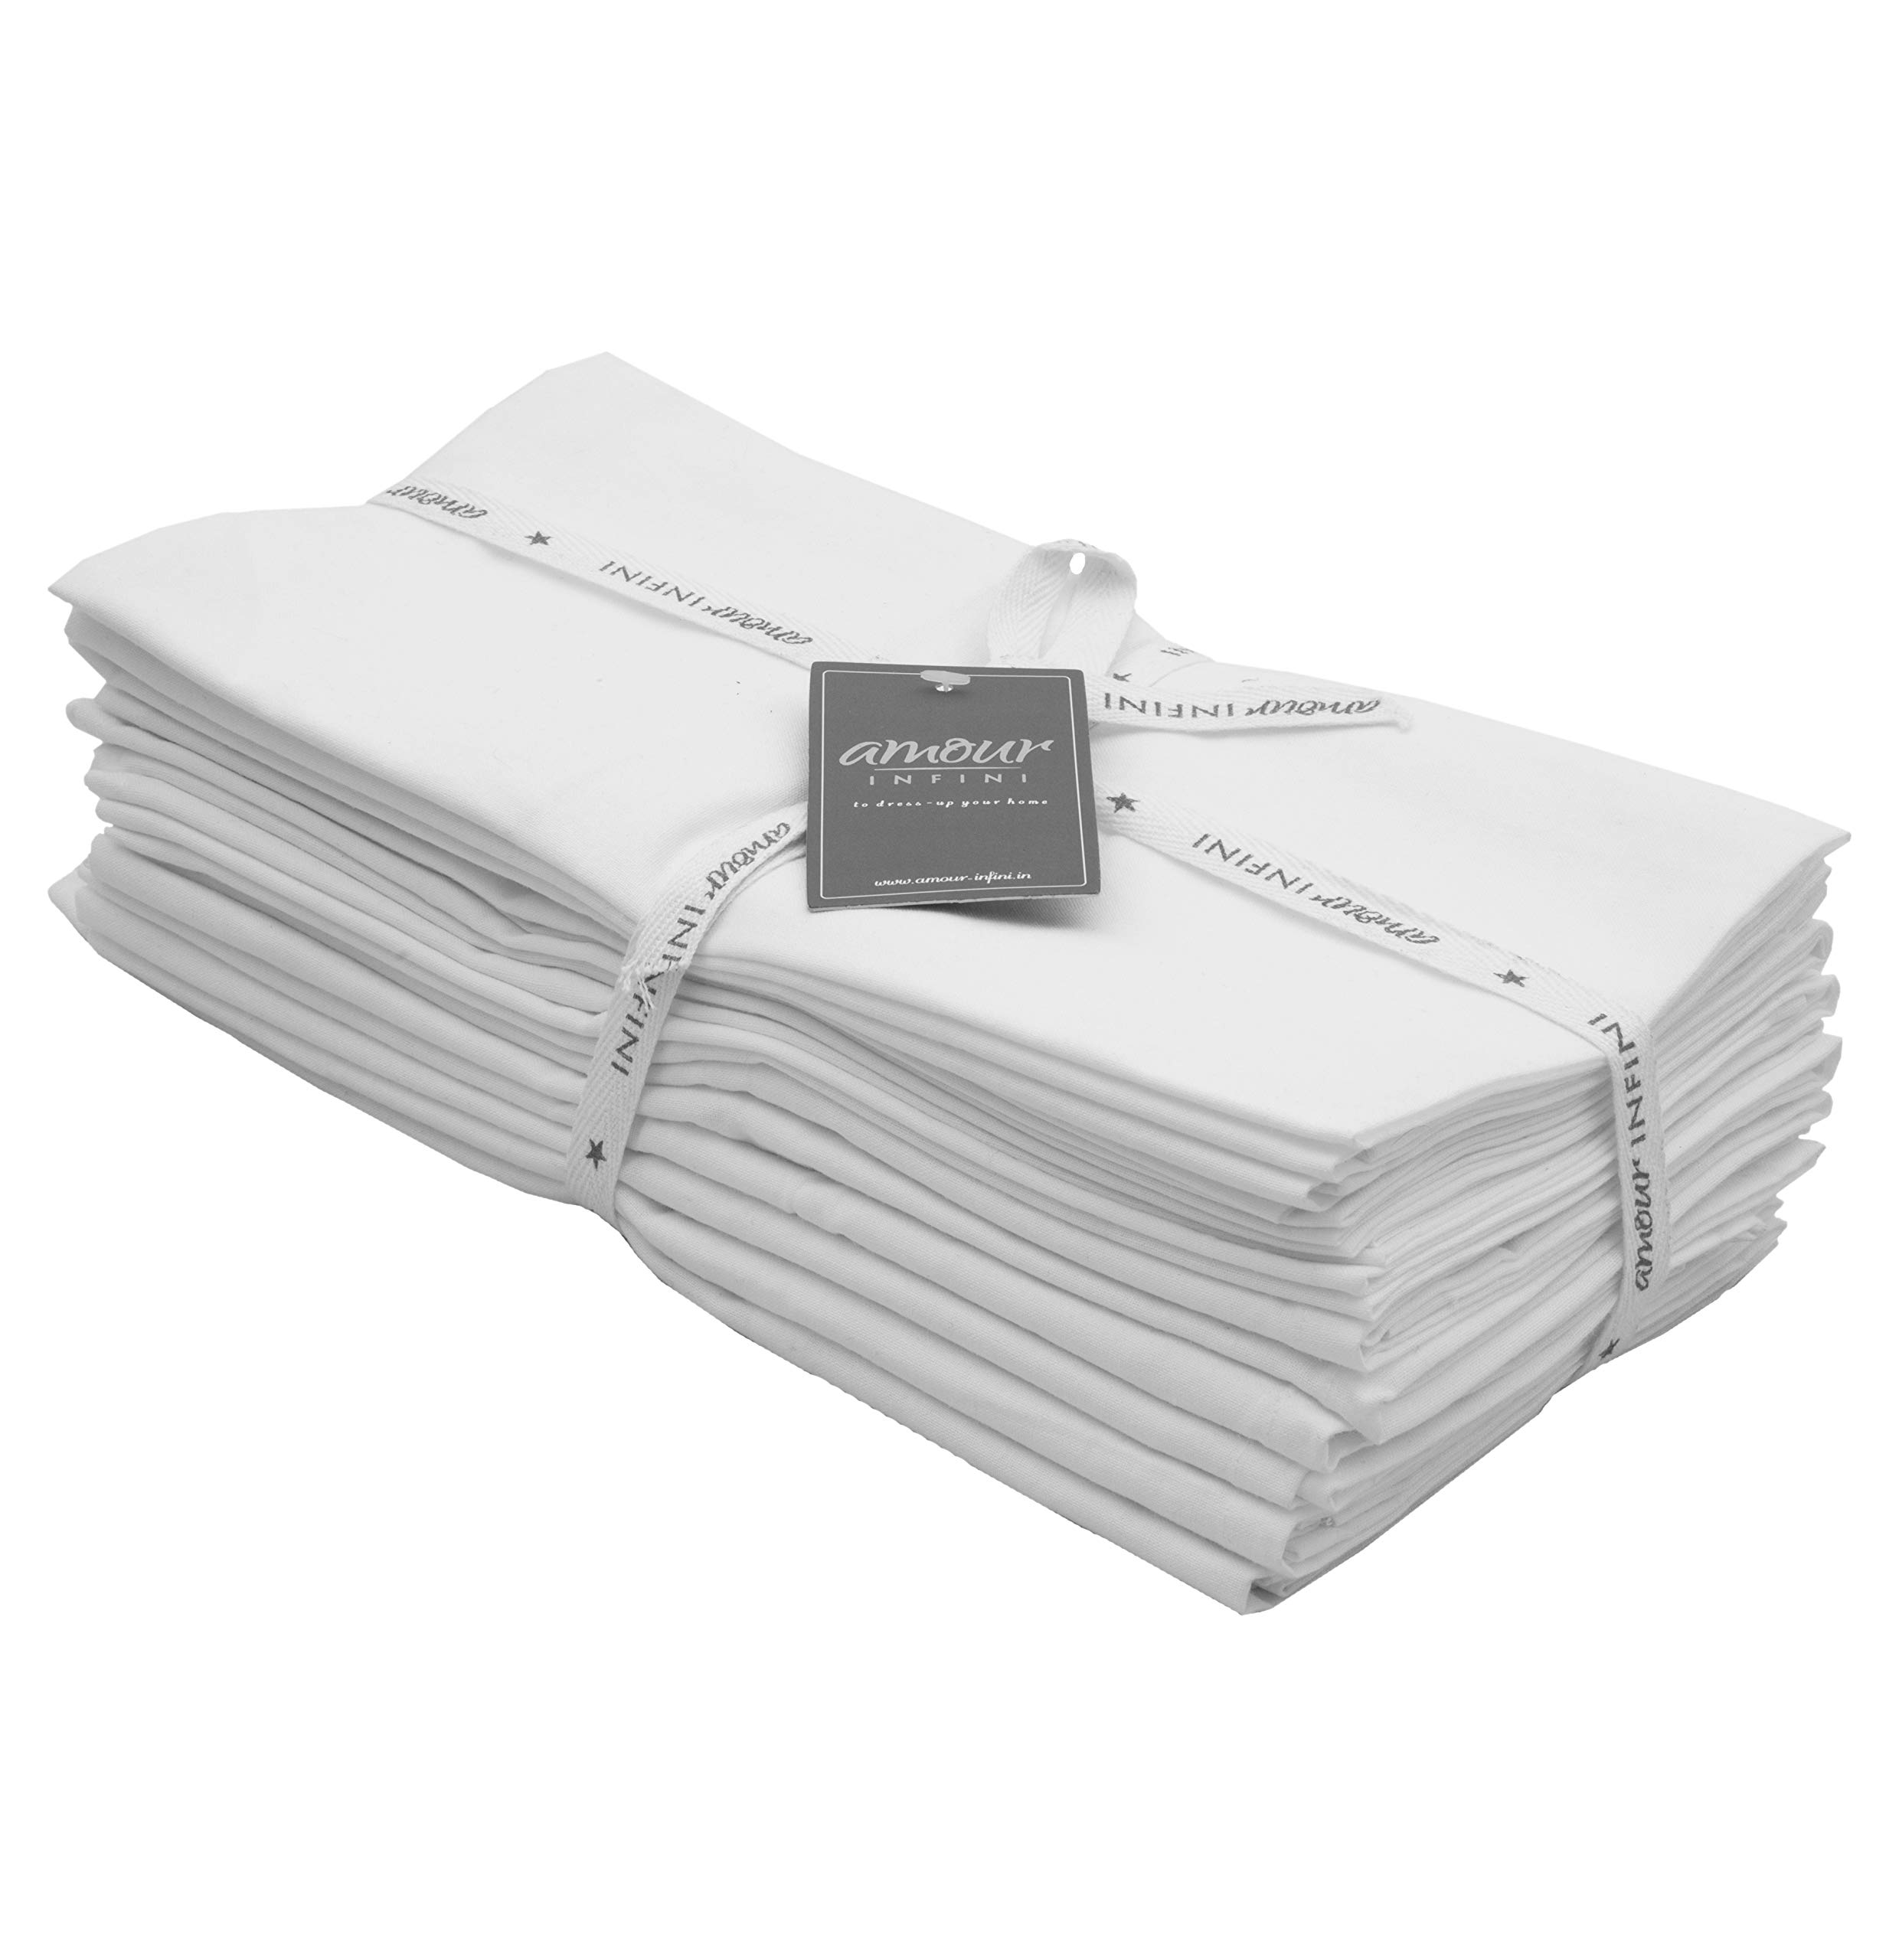 Amour Infini Flour Sack Towels White  12 Pack   28 x 28 Inch   Multi-use Kitchen Towels, Dish Towels, Cloth Napkins  100% Ring Spun Cotton   Highly Absorbent  Tea towels for embroidery